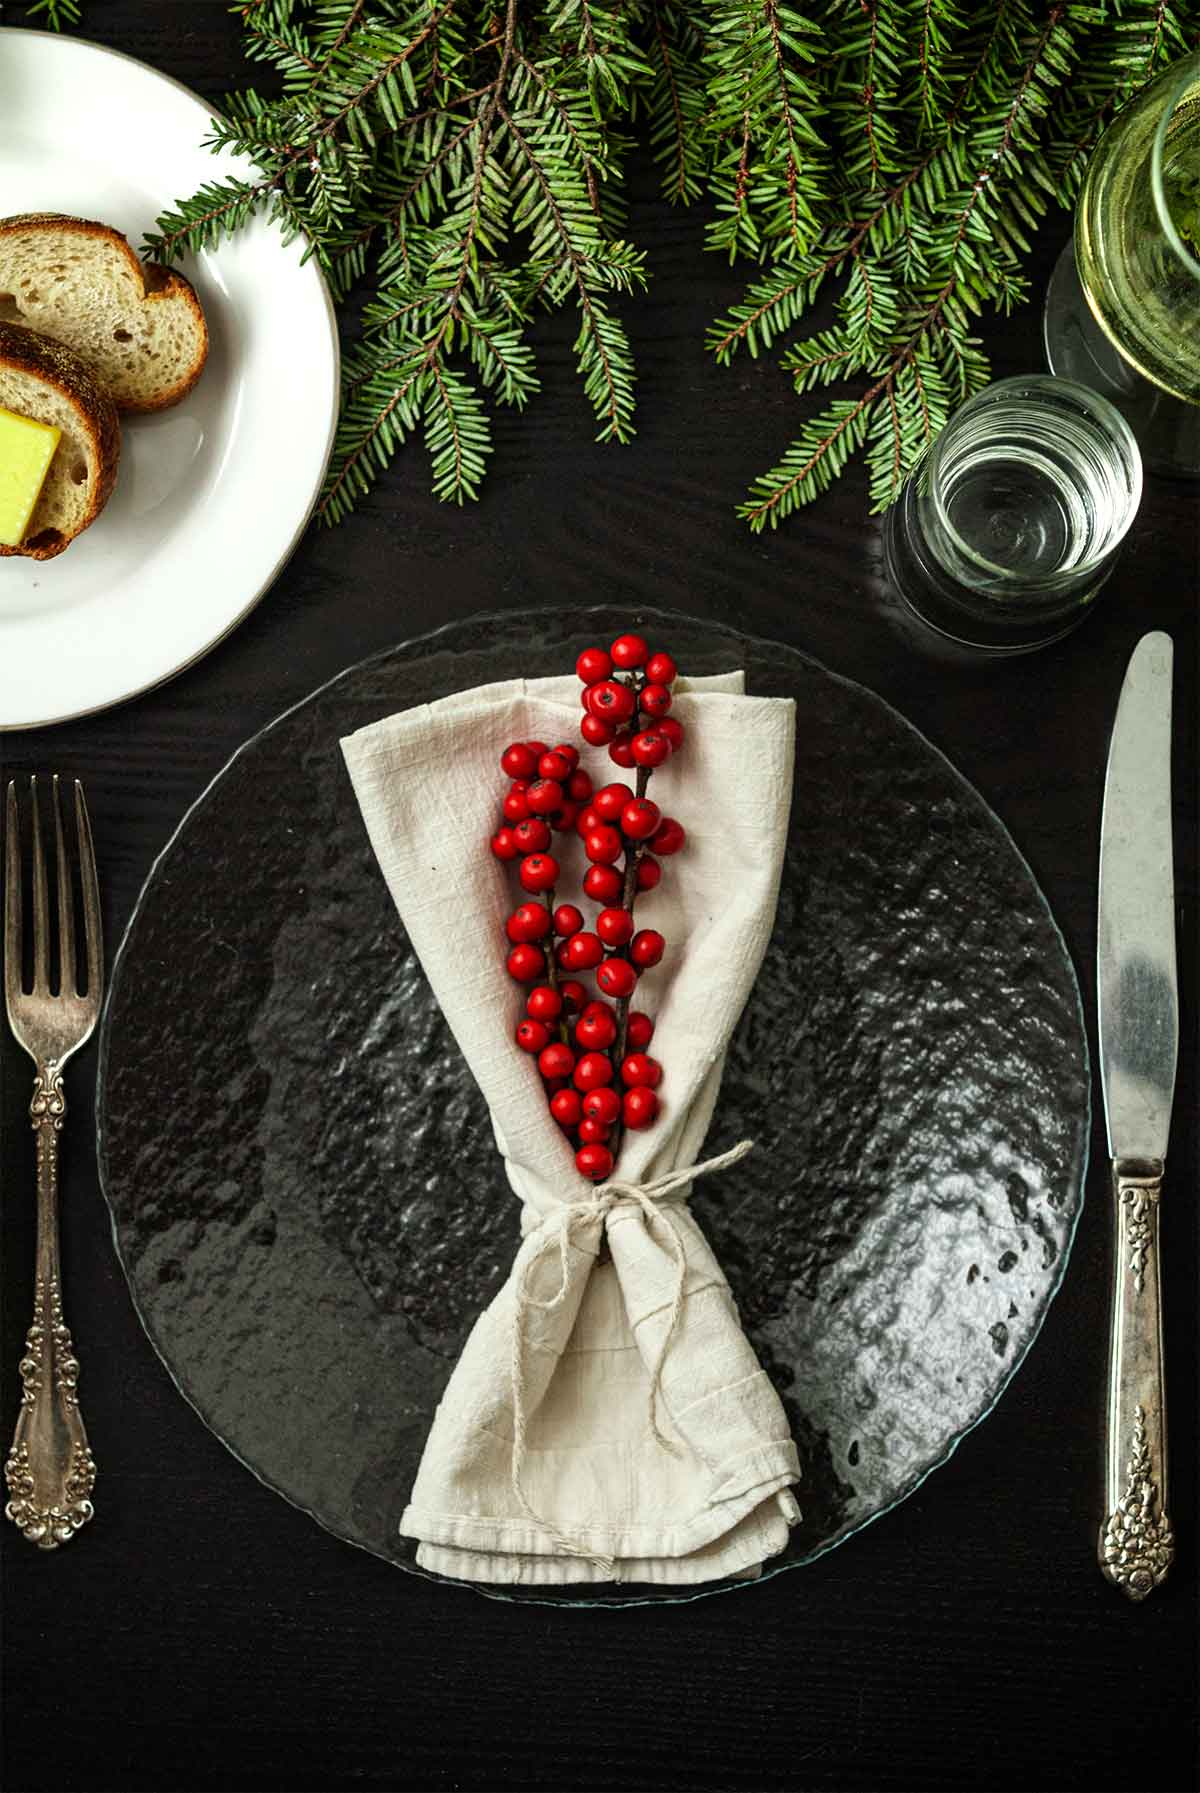 2 sticks of Ilex in a tied napkin on a plate on a table with holiday greenery, a plate of bread, silverware and glassware.